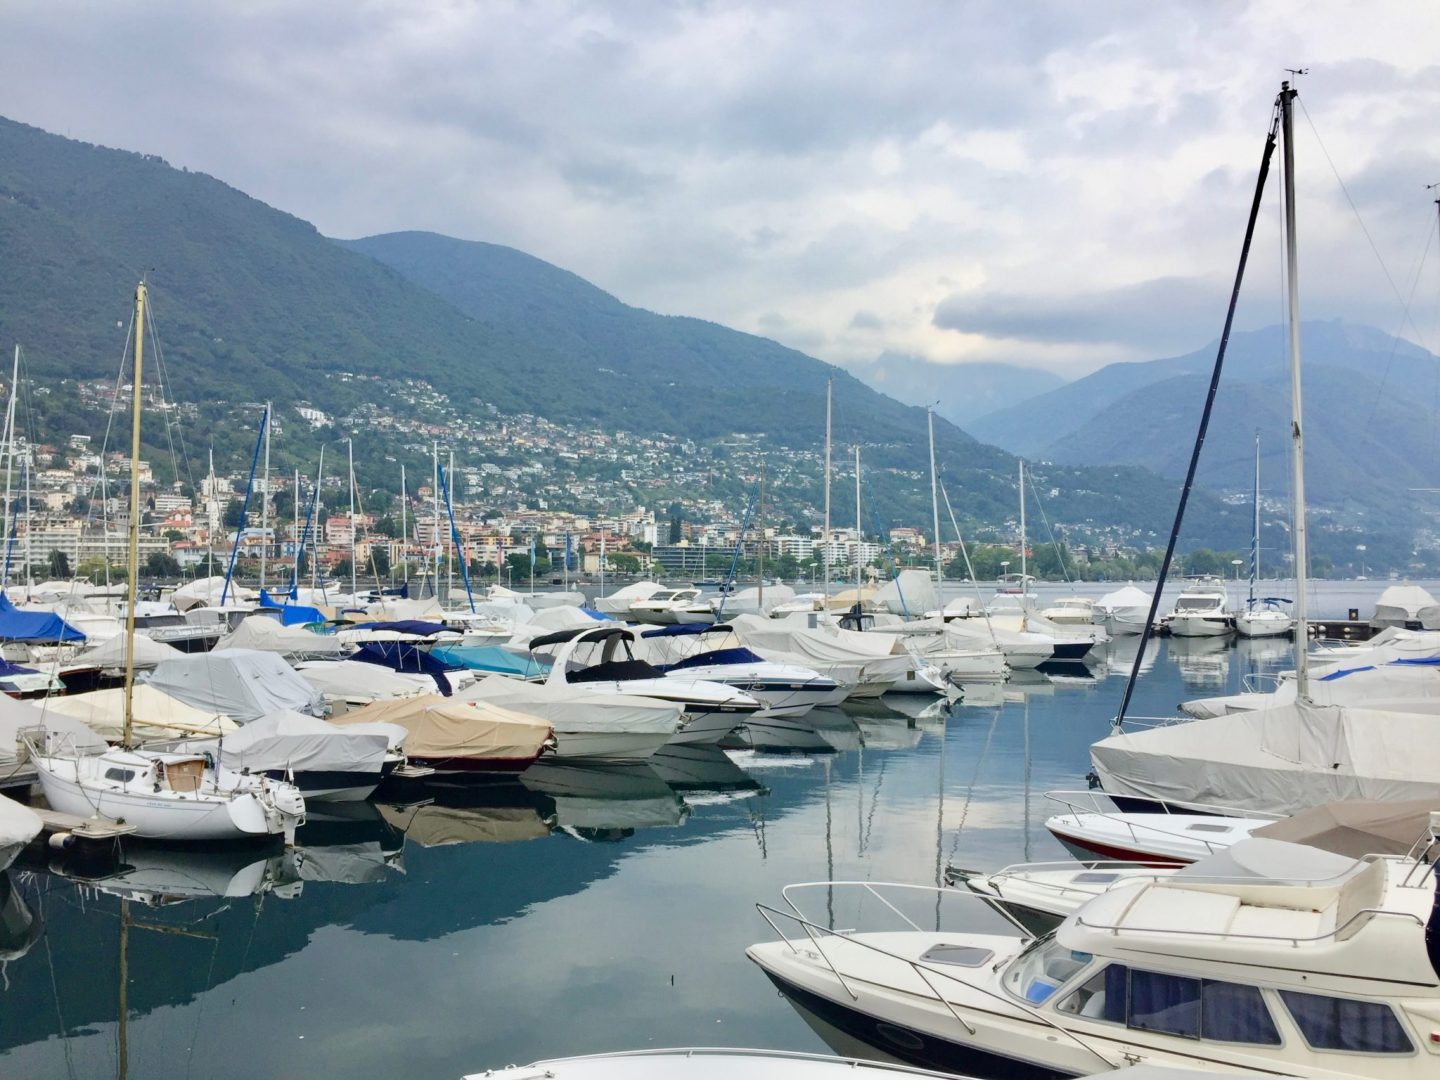 Locarno marina and prom - things to do near Lake Maggiore with kids